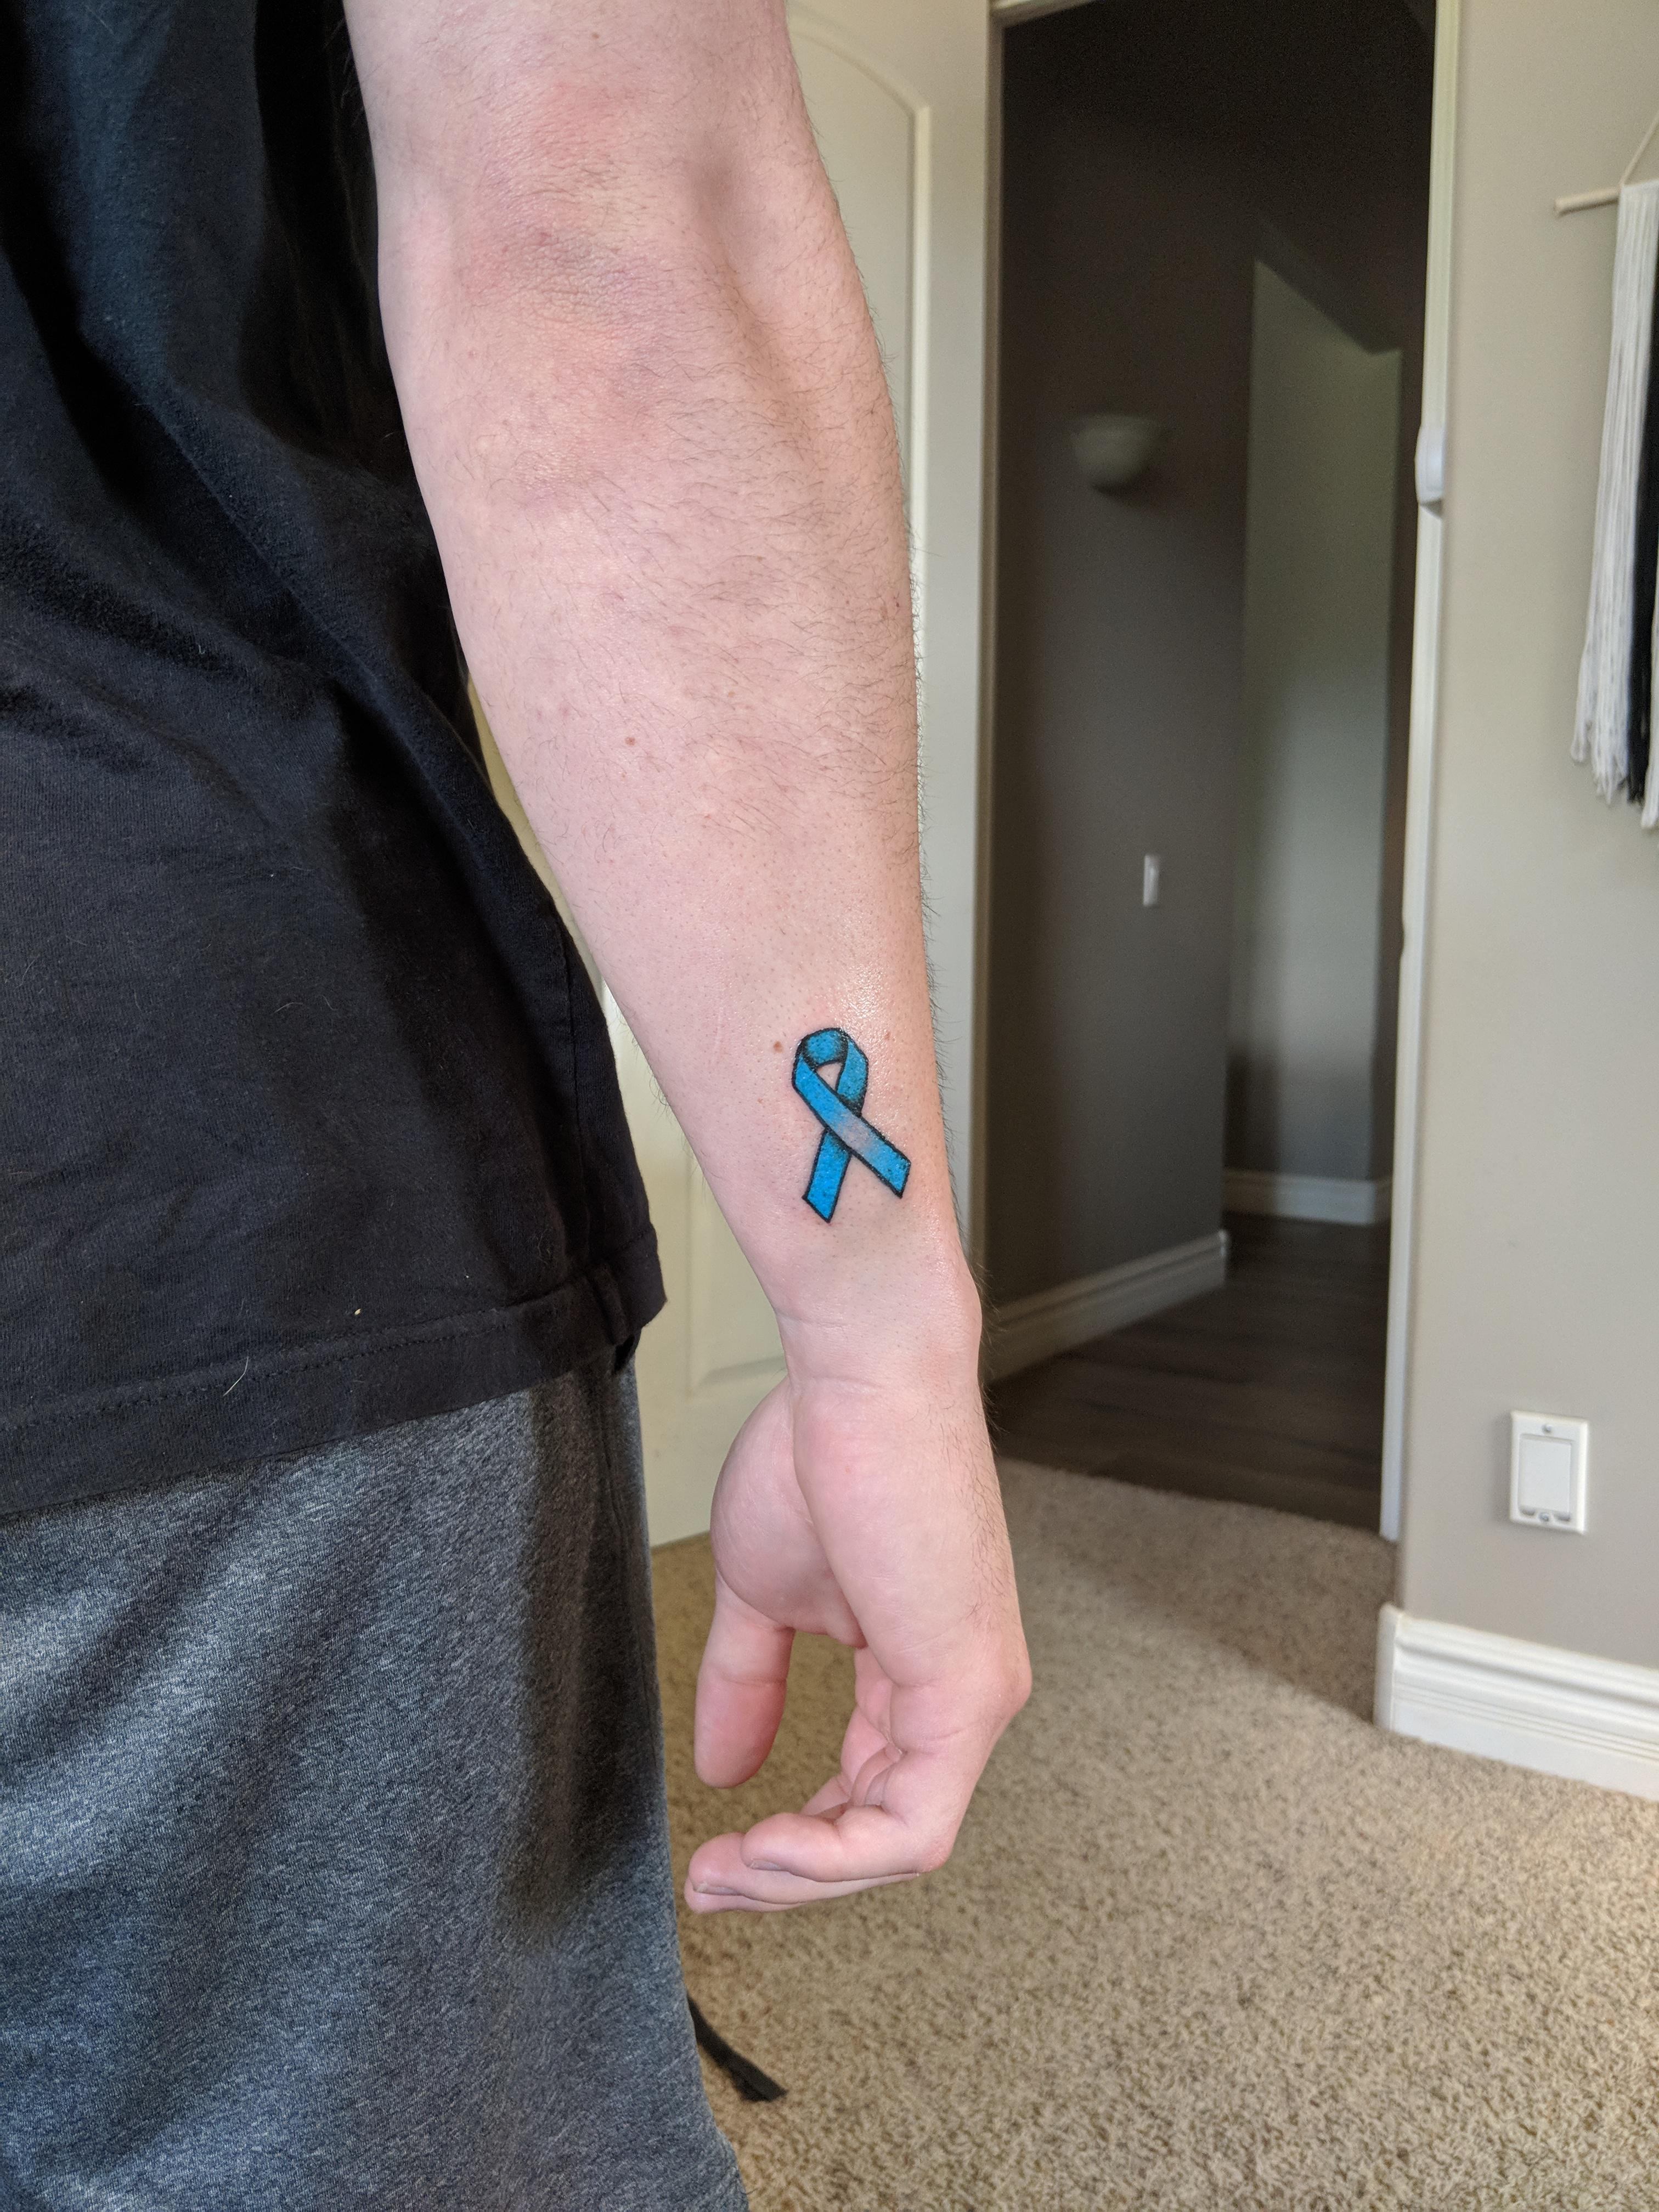 Prostate Cancer Ribbon Tattoo : prostate, cancer, ribbon, tattoo, Prostate, Cancer, Awareness, Ribbon, (Ryan, Boxcar,, Golden, Tattoo, Phoenix,, Tattoos